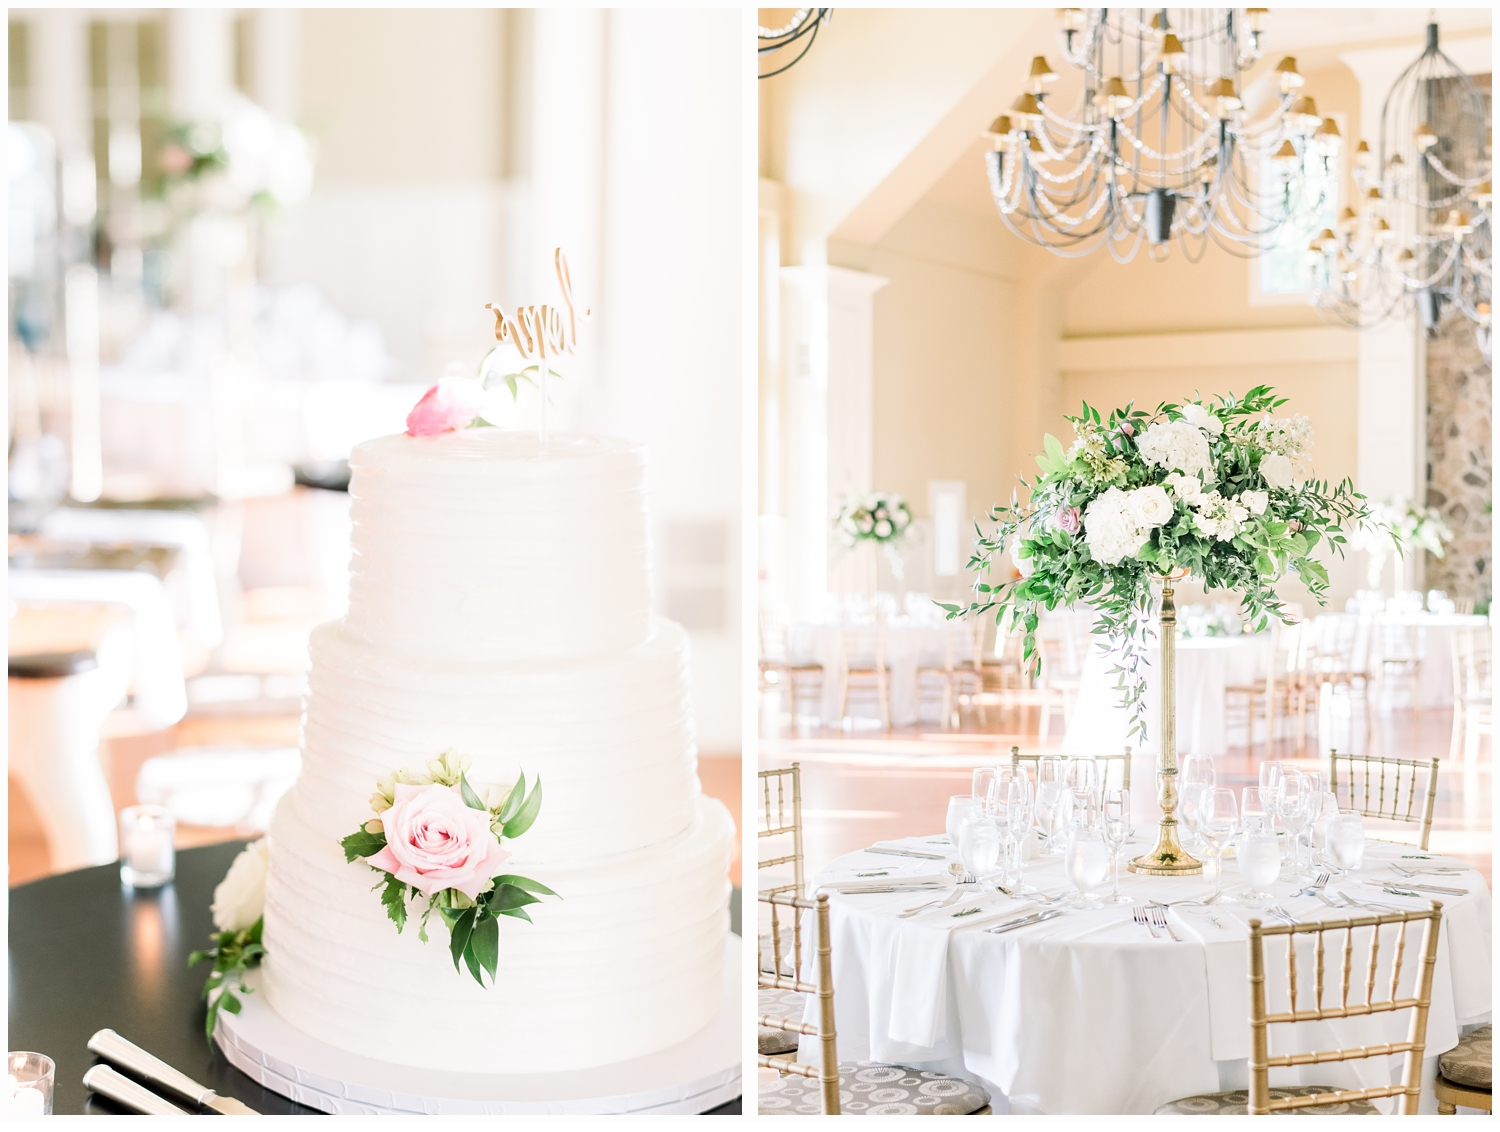 wedding cake and floral centerpiece